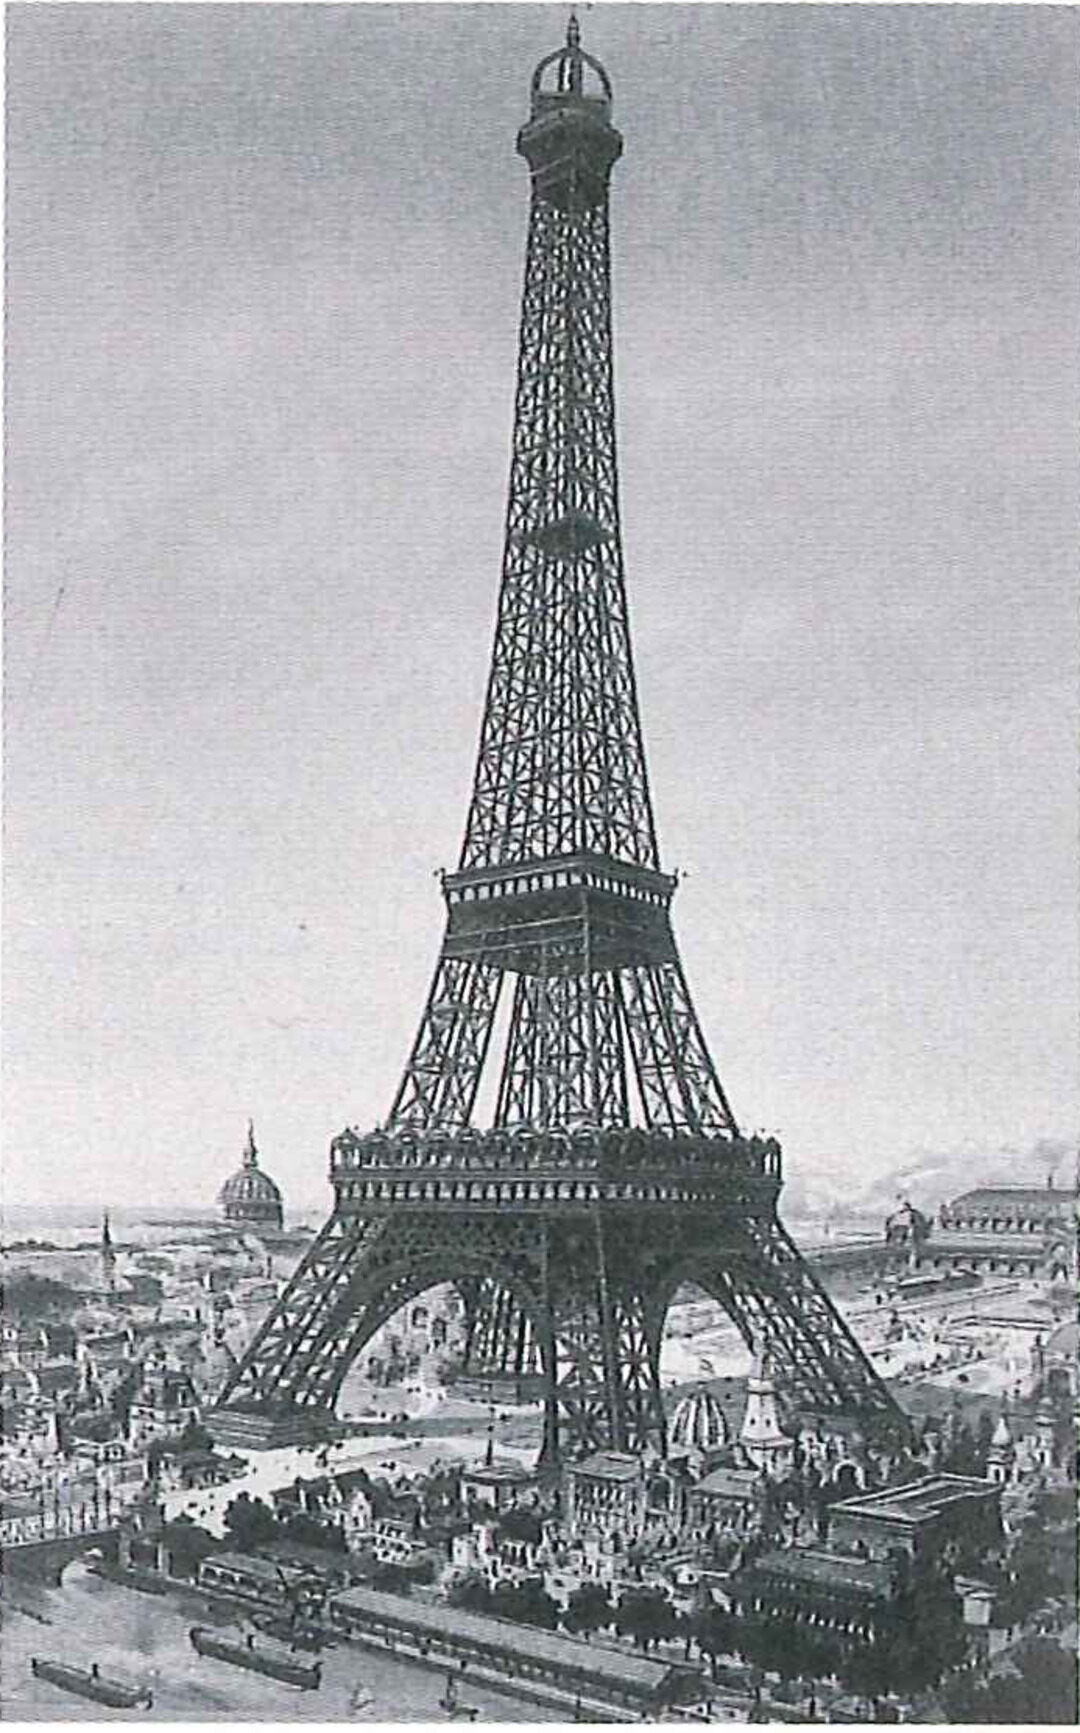 Origami Eiffel Tower - Takes Me Back to Paris! - Origami Expressions | 1733x1080